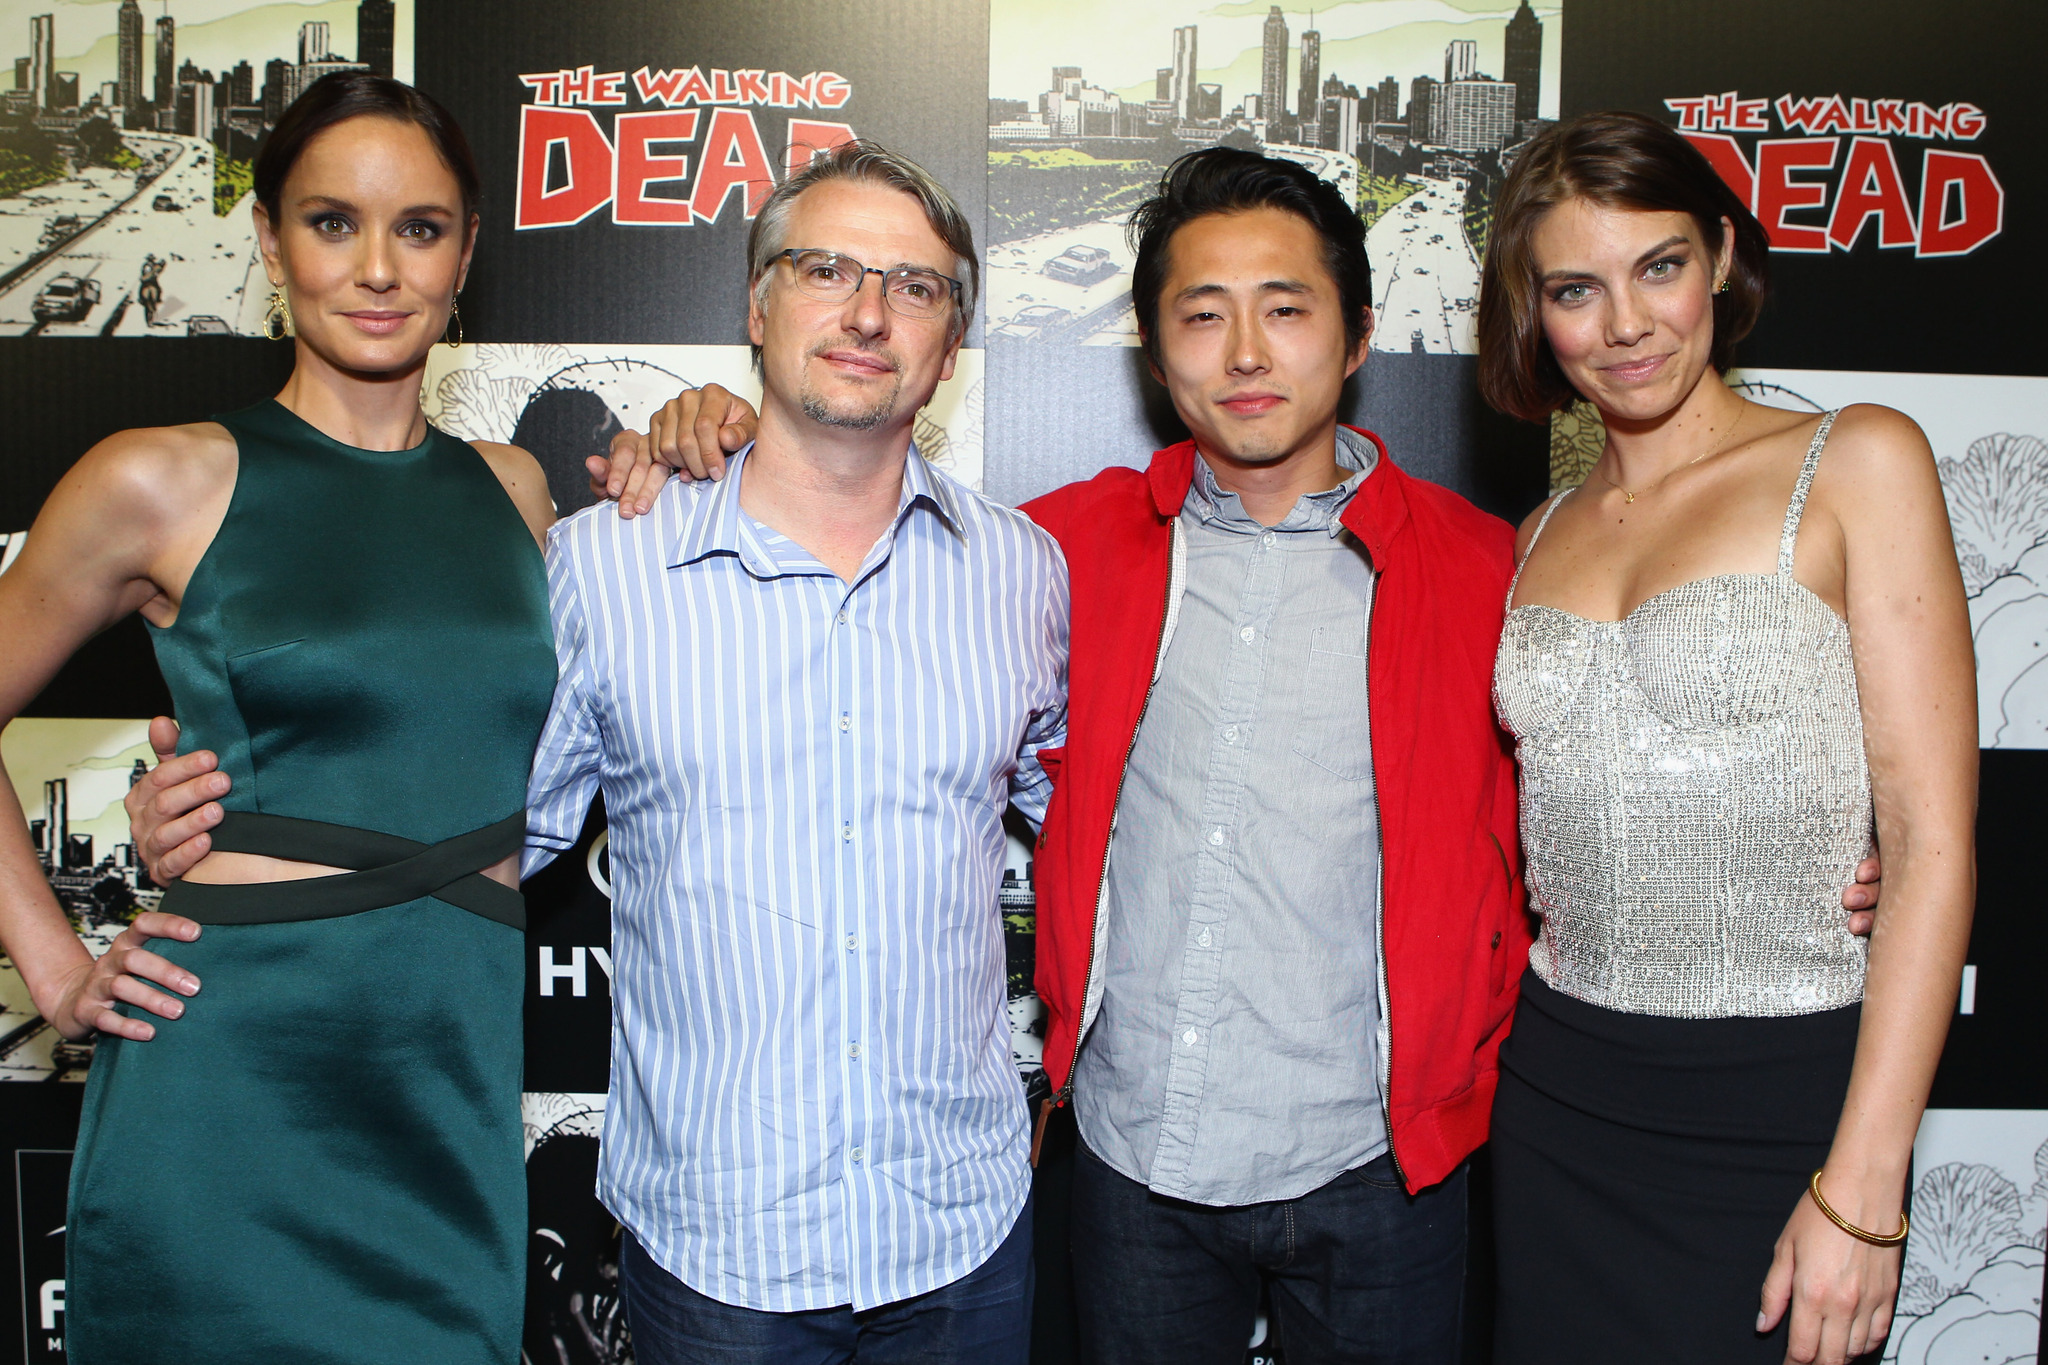 Sarah Wayne Callies, Glen Mazzara, Lauren Cohan, and Steven Yeun at an event for The Walking Dead (2010)